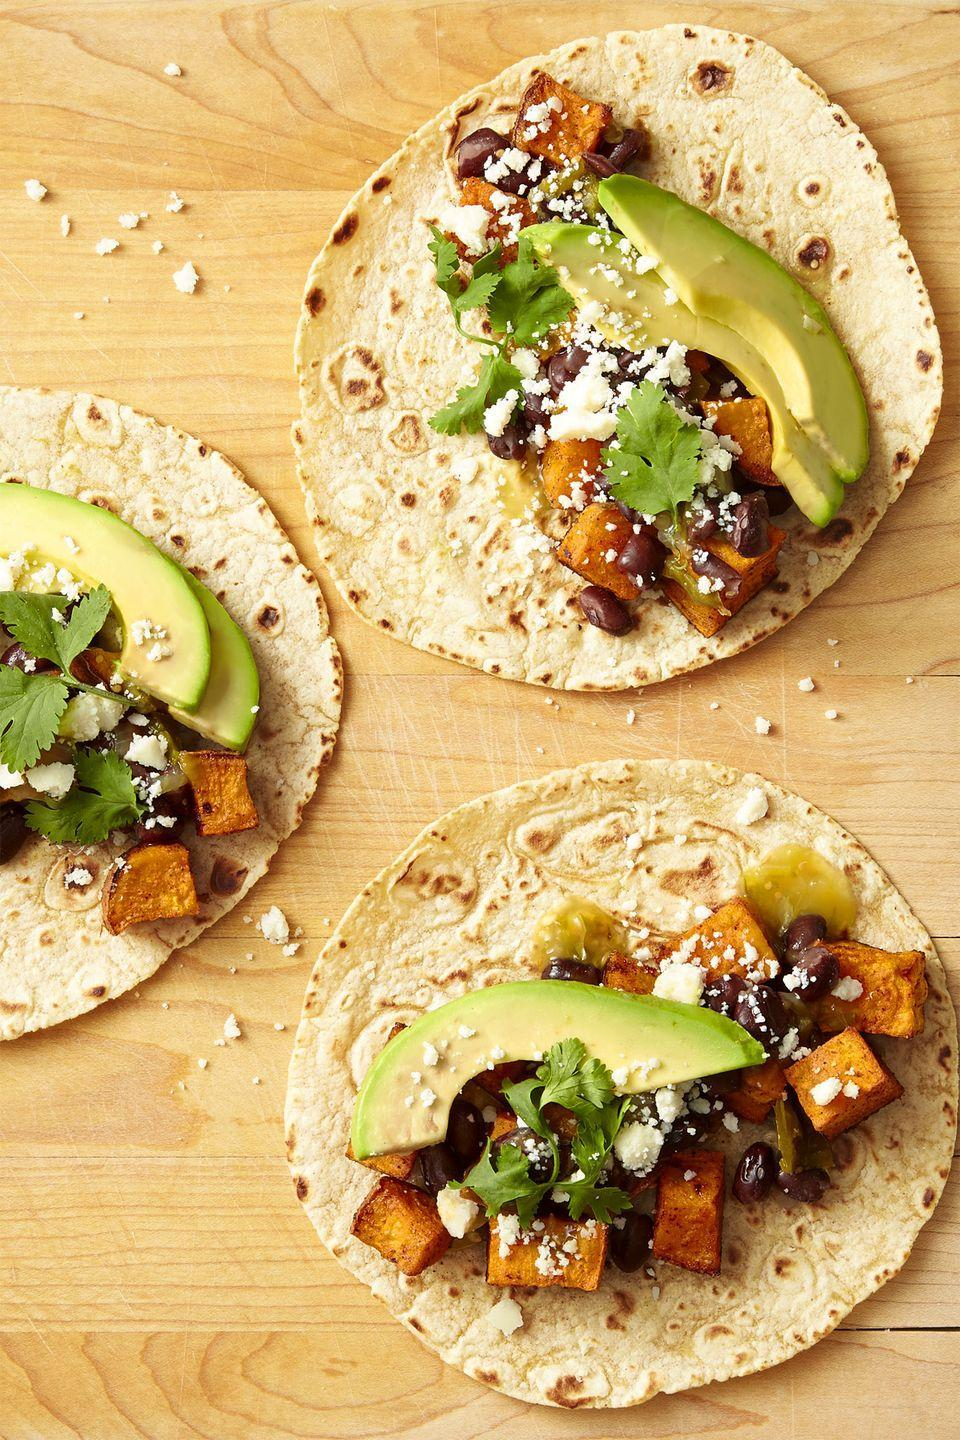 """<p>Go meat-free with these loaded tacos, complete with crumbled cotija. </p><p><em><a href=""""https://www.goodhousekeeping.com/food-recipes/easy/a44227/sweet-potato-avocado-black-bean-tacos-recipe/"""" rel=""""nofollow noopener"""" target=""""_blank"""" data-ylk=""""slk:Get the recipe for Sweet Potato, Avocado, and Black Bean Tacos »"""" class=""""link rapid-noclick-resp"""">Get the recipe for Sweet Potato, Avocado, and Black Bean Tacos »</a></em></p><p><strong>RELATED:</strong> <a href=""""https://www.goodhousekeeping.com/food-recipes/healthy/g807/vegan-recipes/"""" rel=""""nofollow noopener"""" target=""""_blank"""" data-ylk=""""slk:54 Vegan Recipes That Your Whole Family Will Love"""" class=""""link rapid-noclick-resp"""">54 Vegan Recipes That Your Whole Family Will Love</a></p>"""